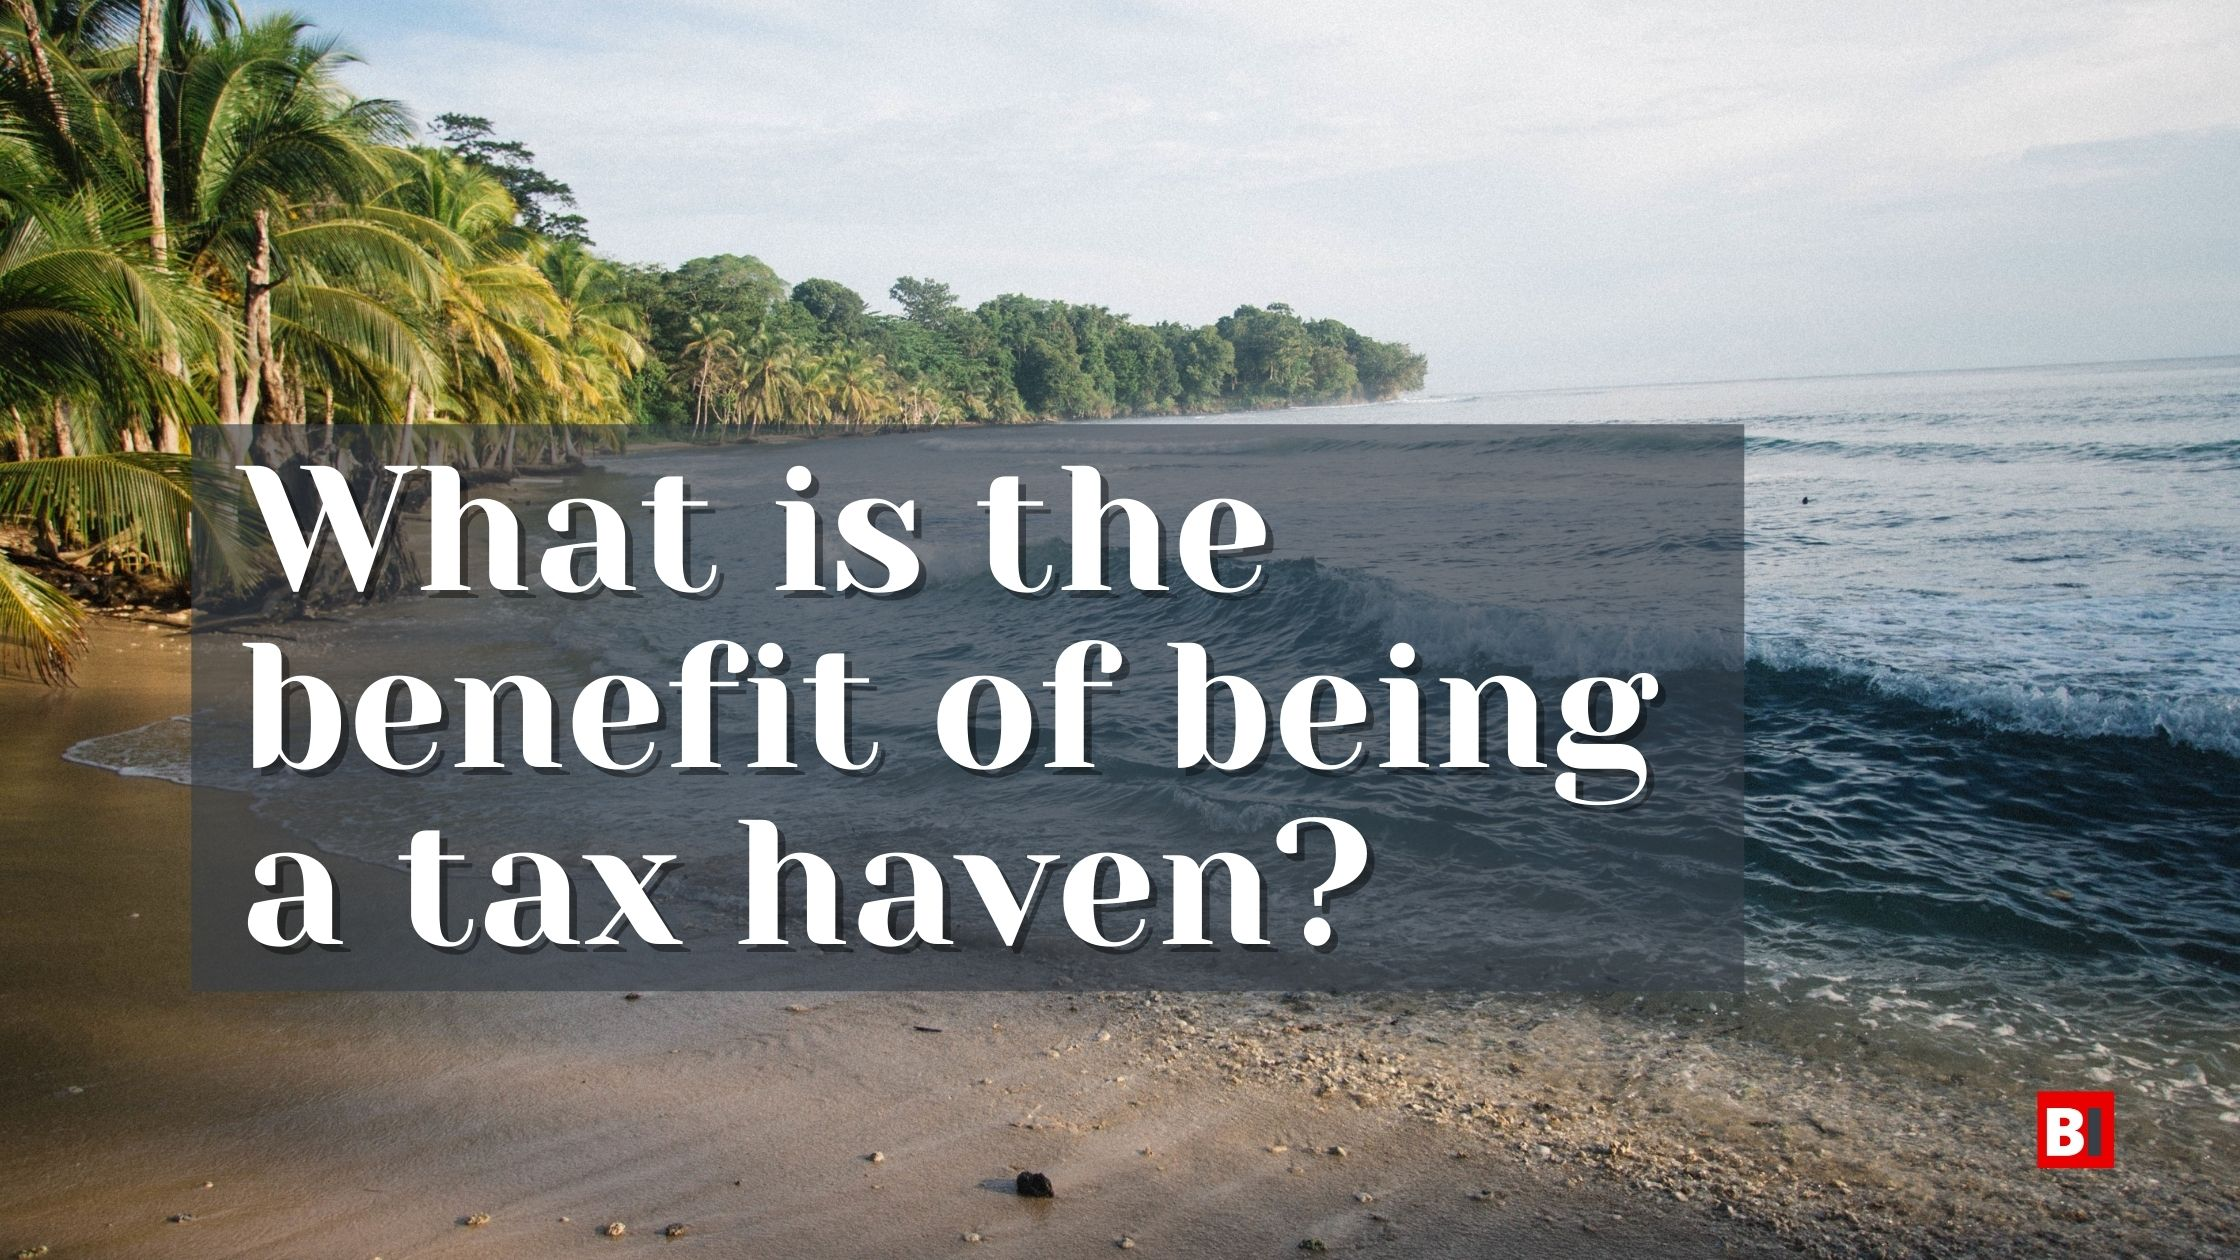 what is the benefit of being a tax haven?